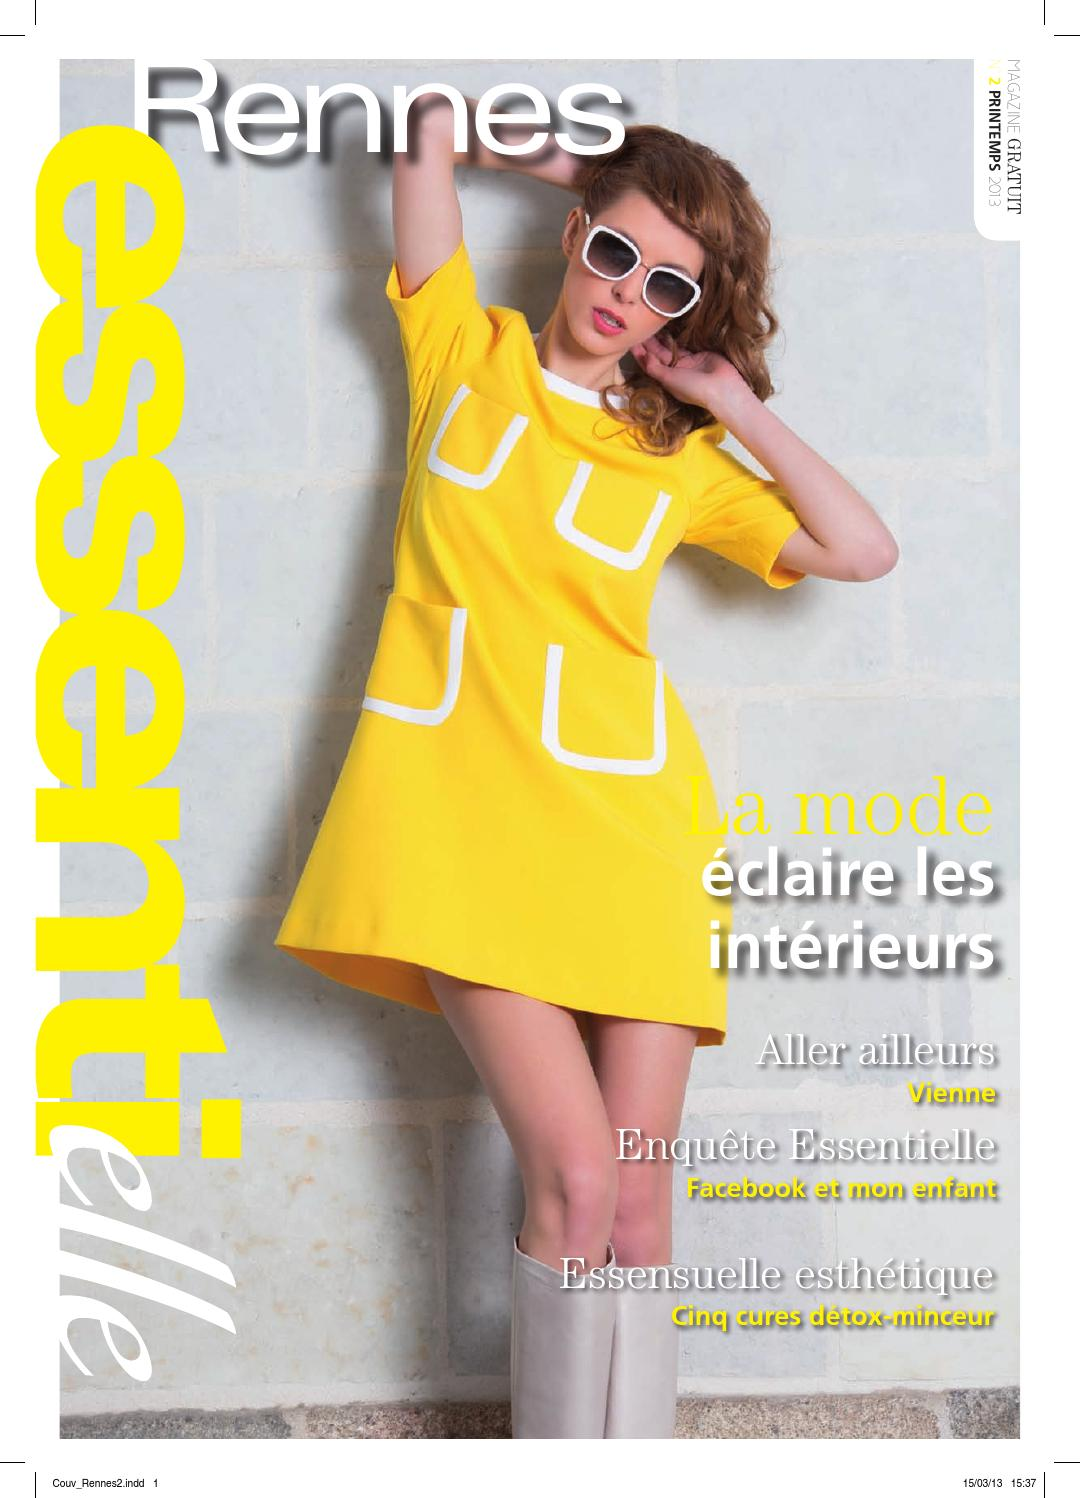 324e445c29c75 Essentielle magazine Rennes Printemps 2013 by Essentielle Mag - issuu